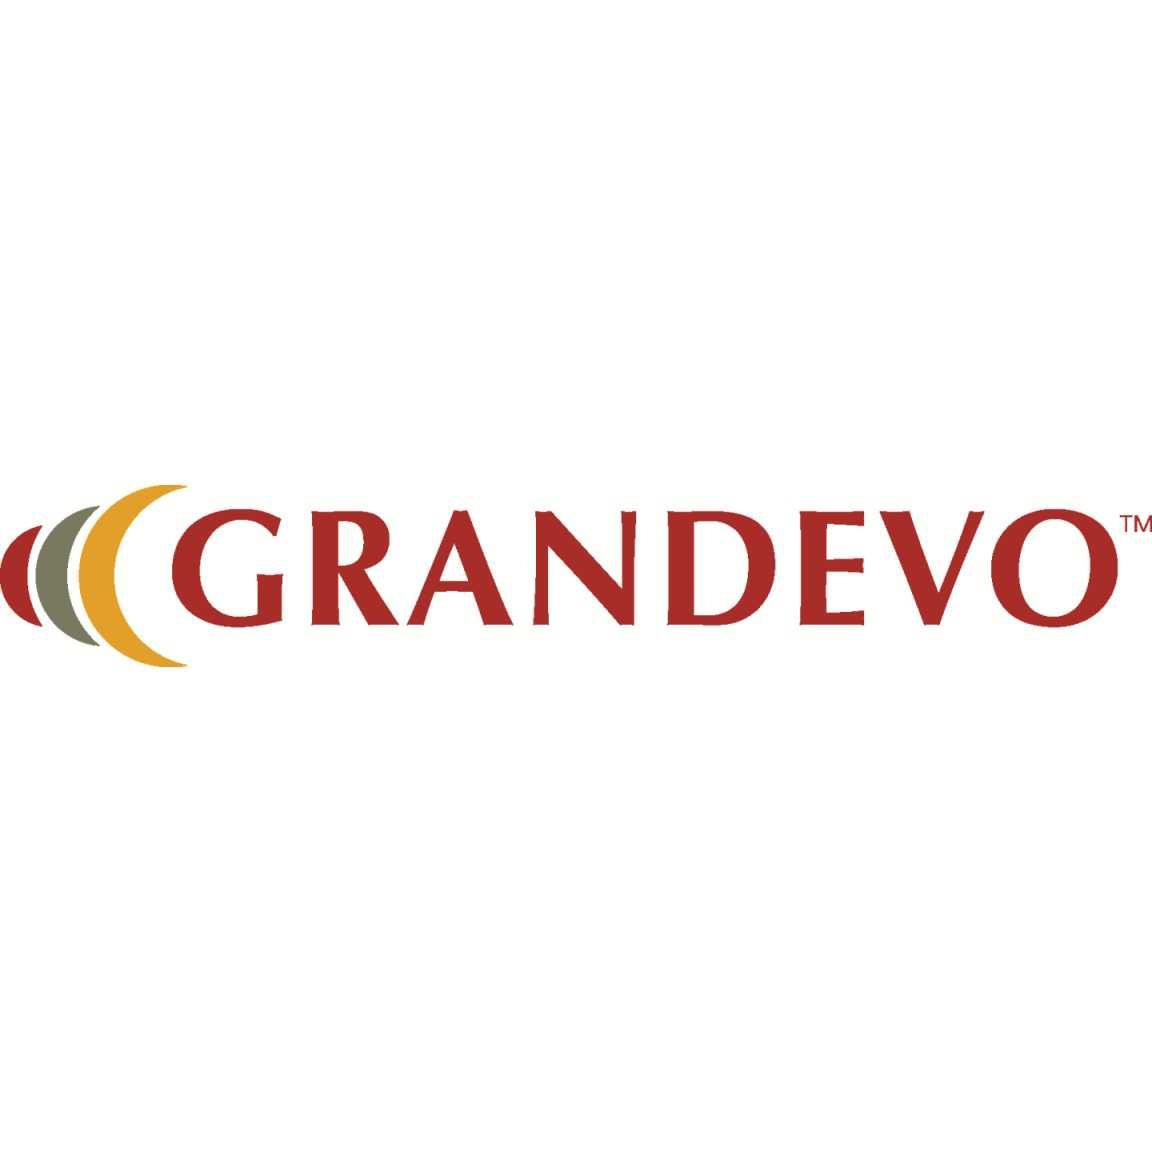 EPA Removes Bee Toxicity Warning From Grandevo